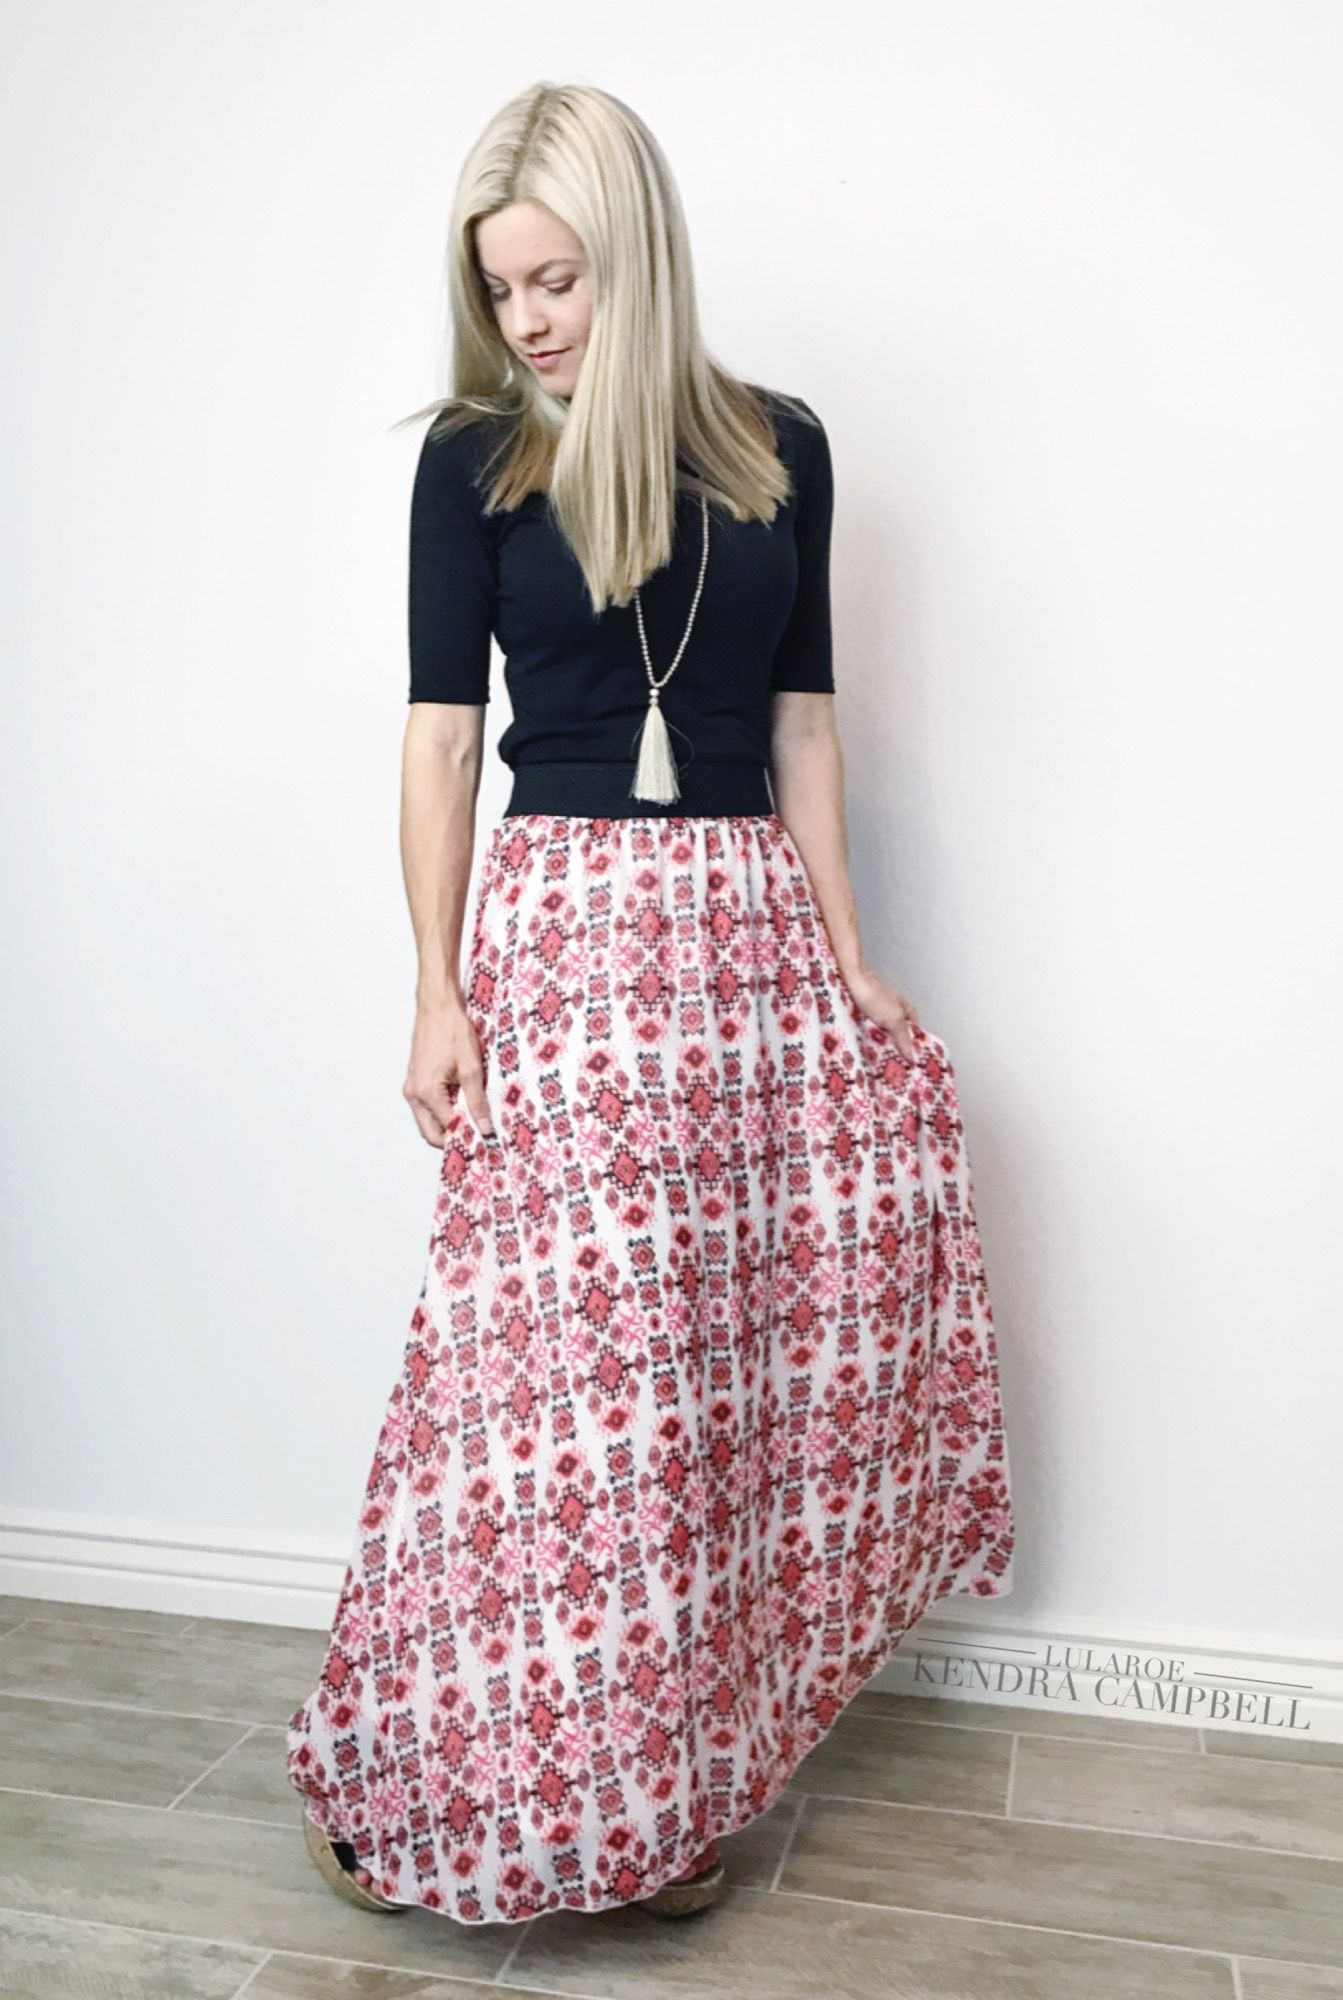 83020c367 My favorite LuLaRoe Lucy skirt, paired with a solid black Julia dress. Fits  my Boho style perfectly! Click to shop LuLaRoe or for more style  inspiration!